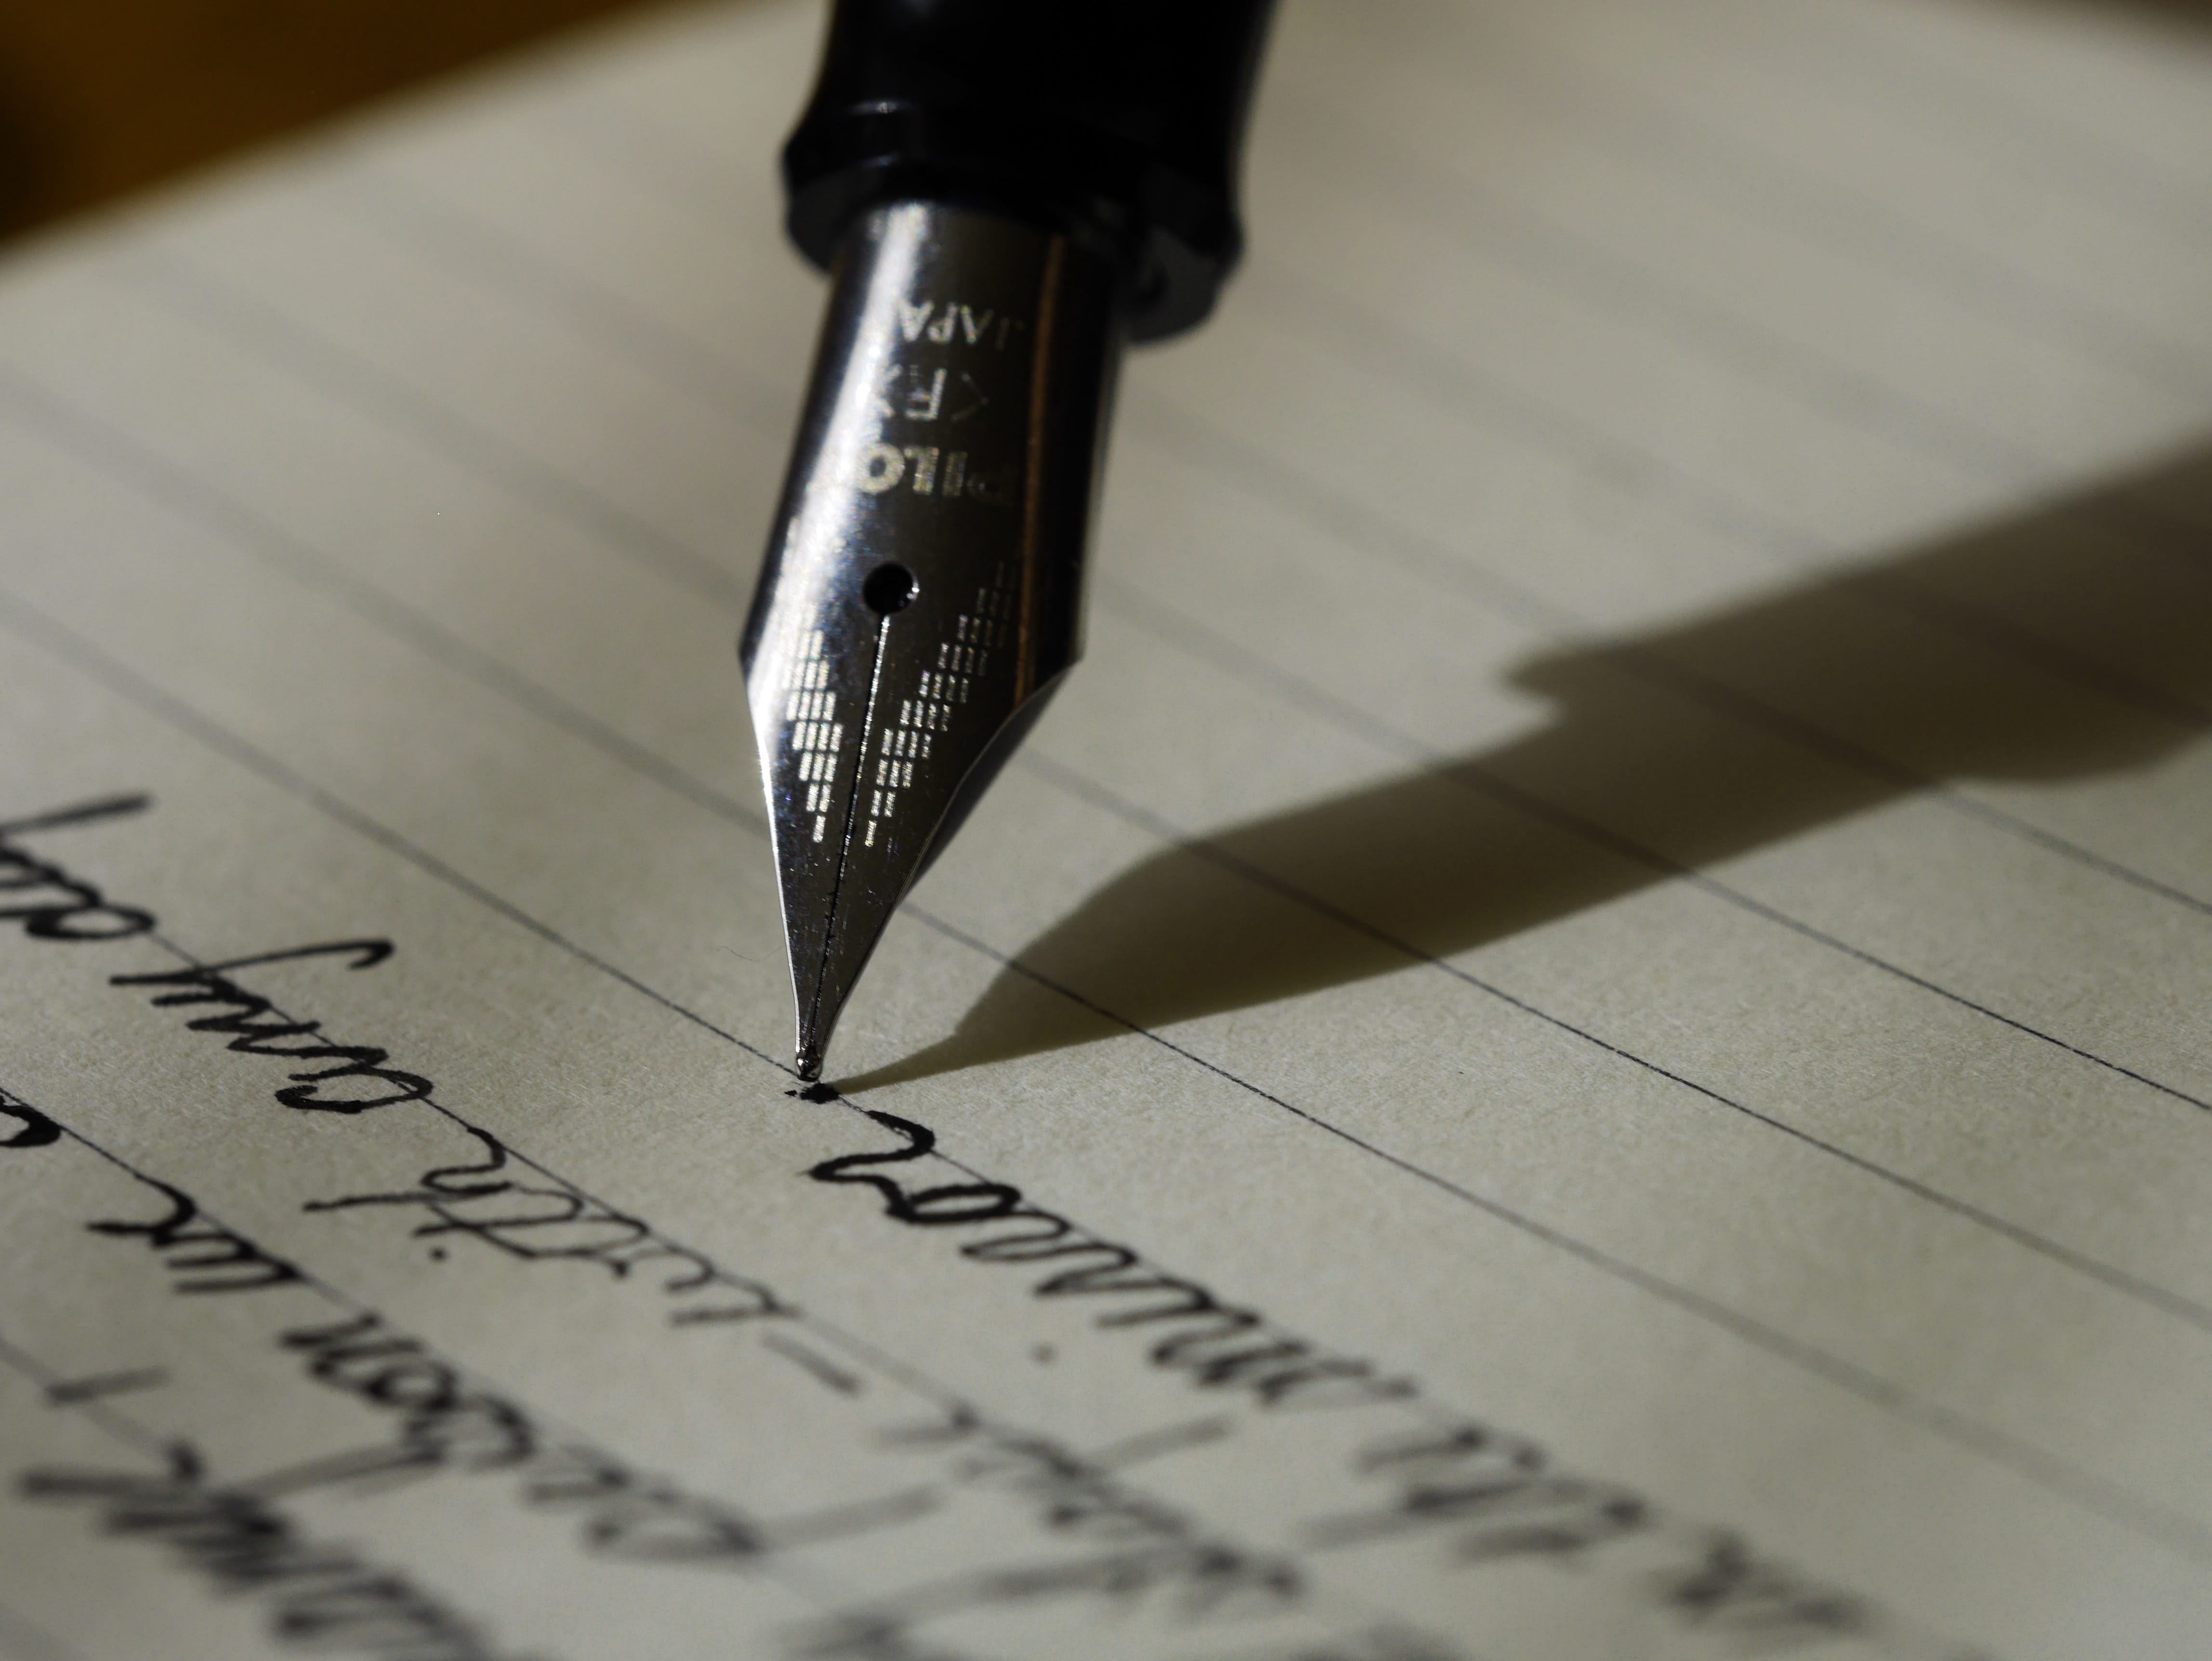 Writing with a fountain pen; image by Aaron Burden, via Unsplash.com.